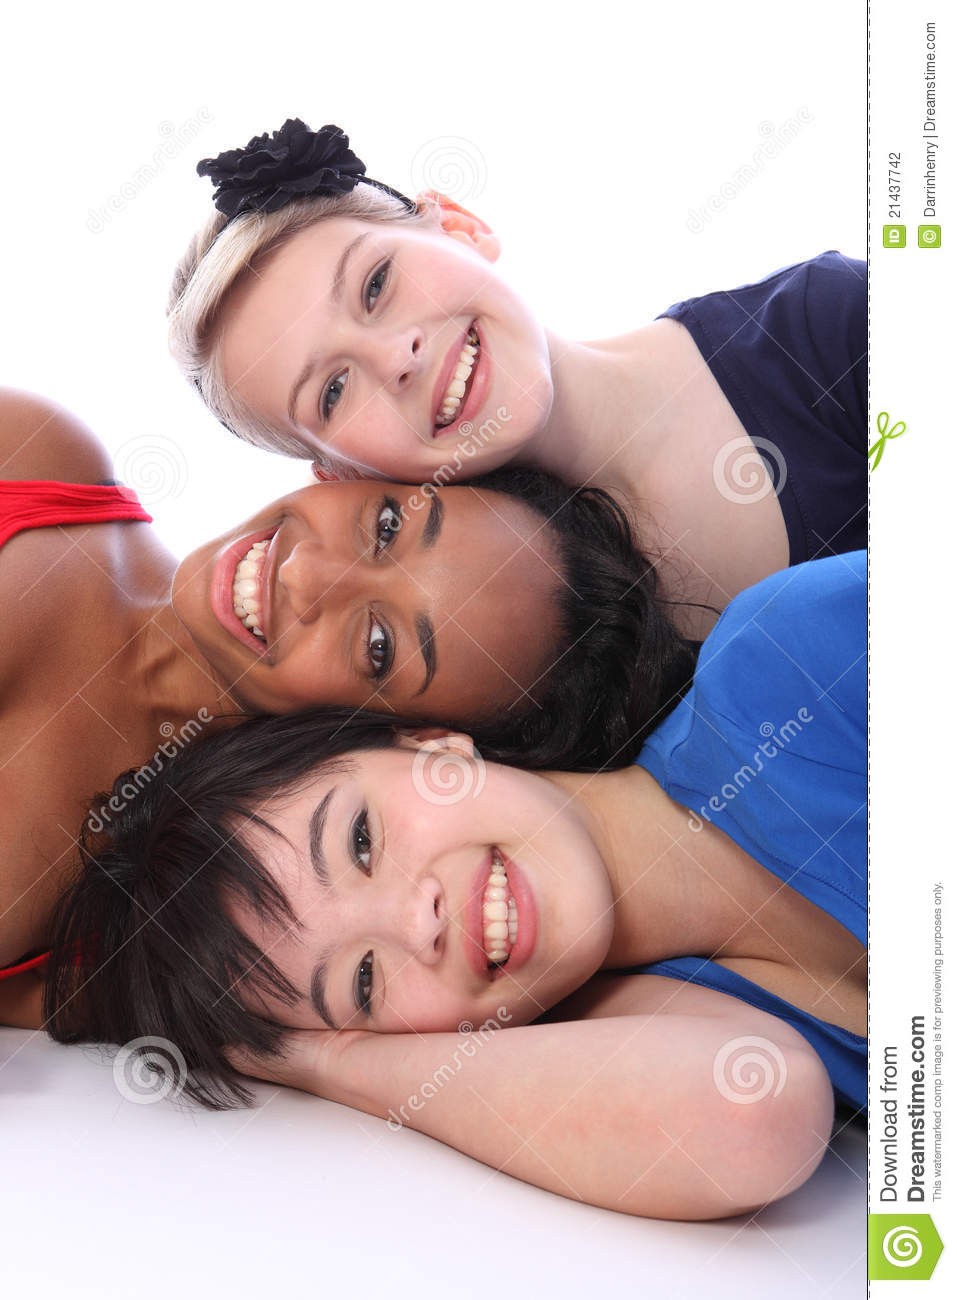 Mixed race happy girls tower of smiling faces